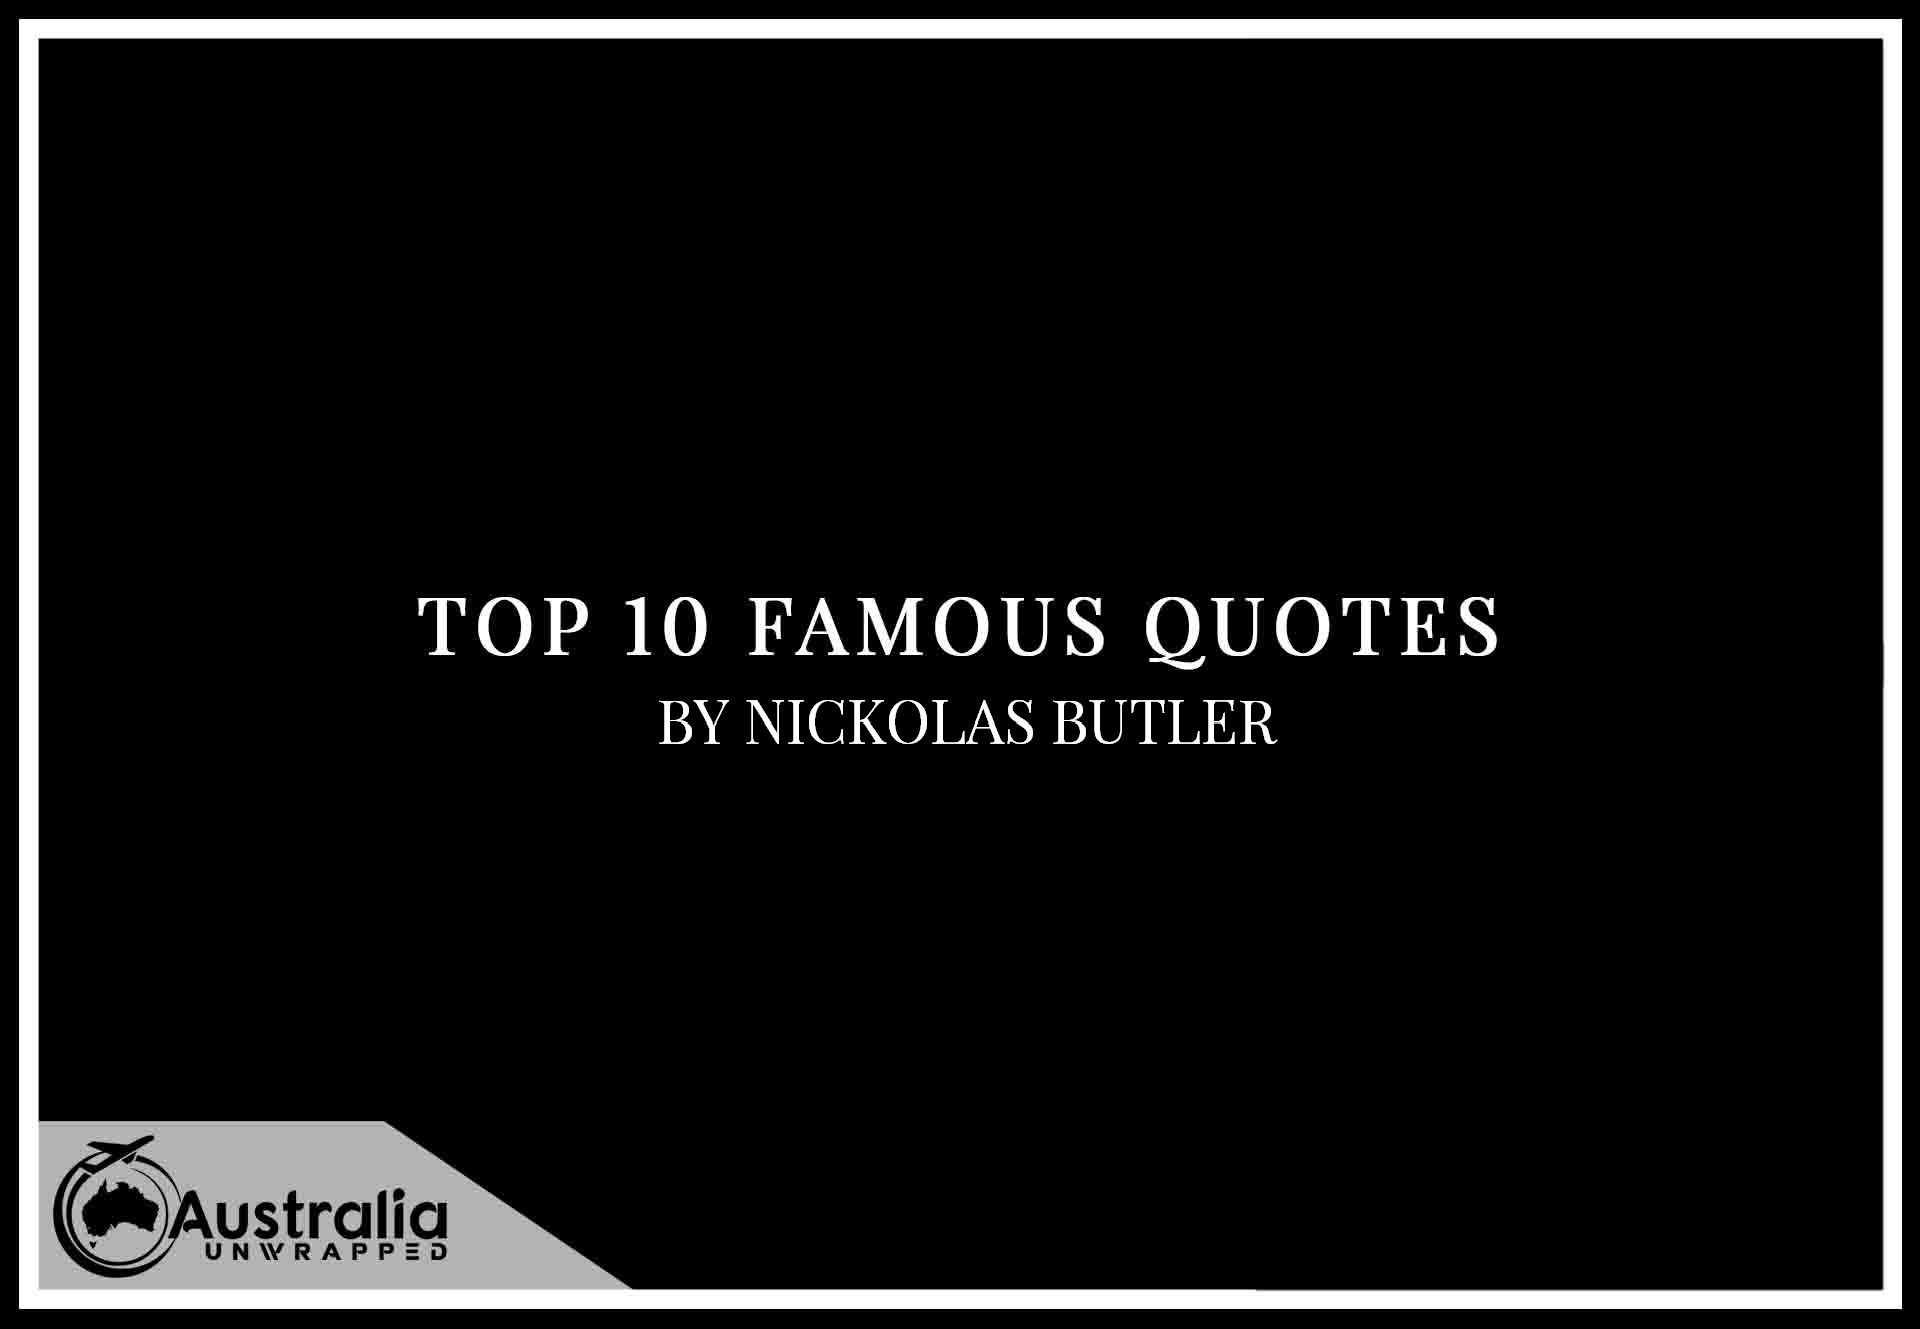 Top 10 Famous Quotes by Author Nickolas Butler